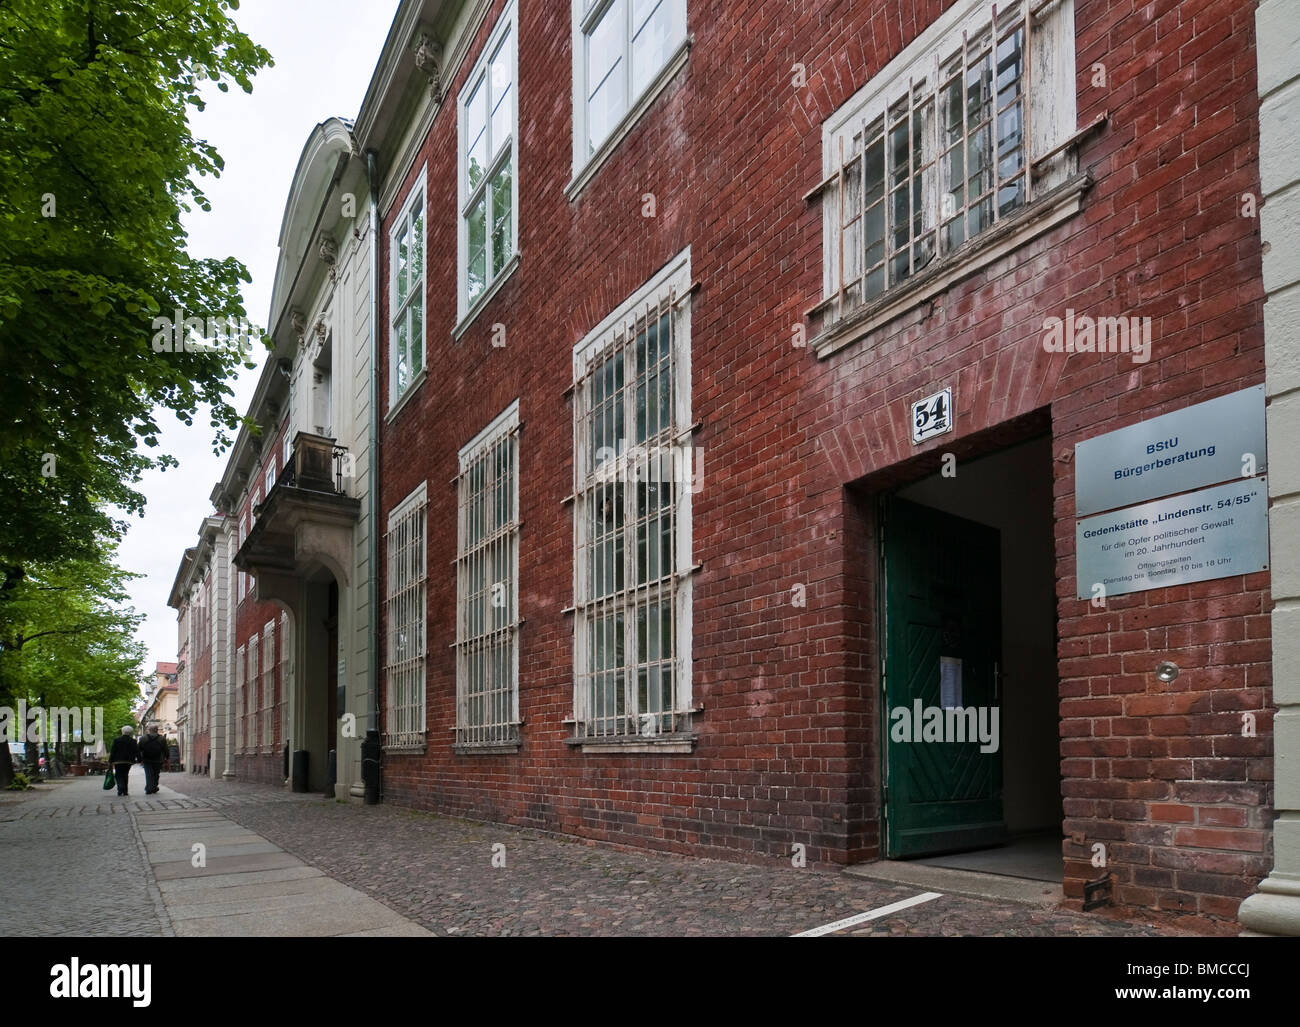 Exterior, Former prison of the state security service of the GDR, Potsdam, Brandenburg - Stock Image